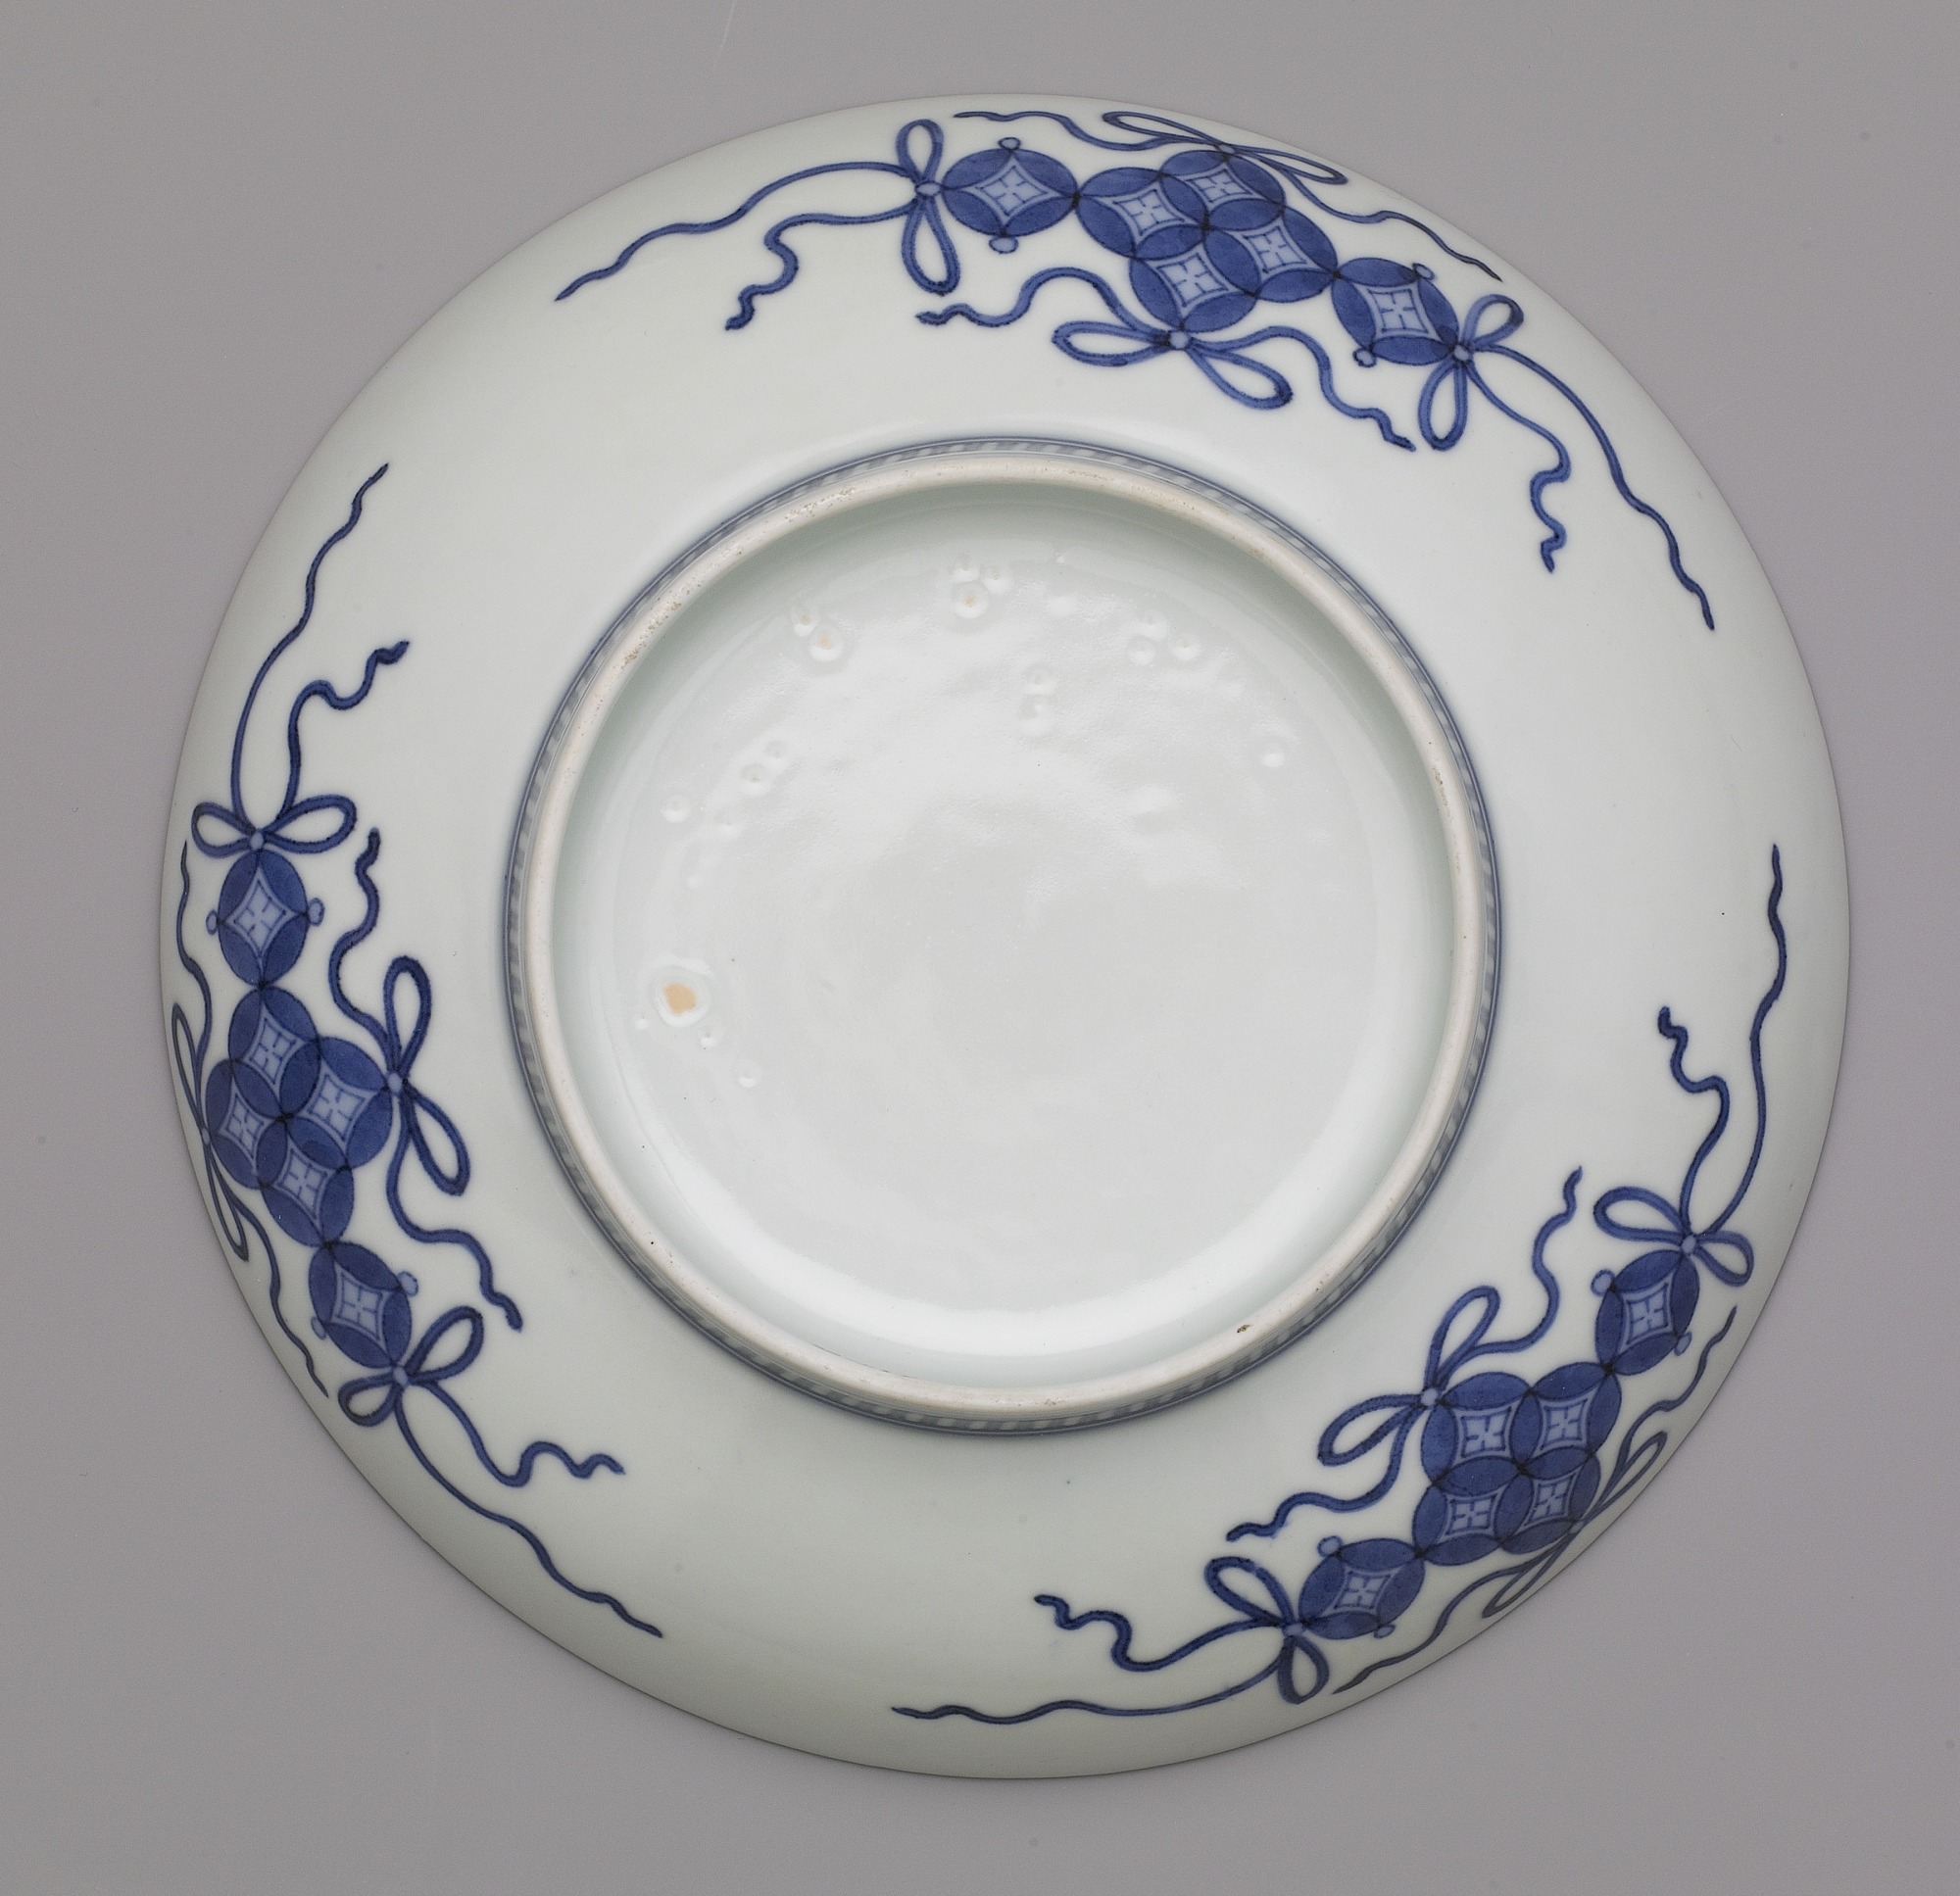 base: Nabeshima ware dish with design of reeds in mist, seven-sun size